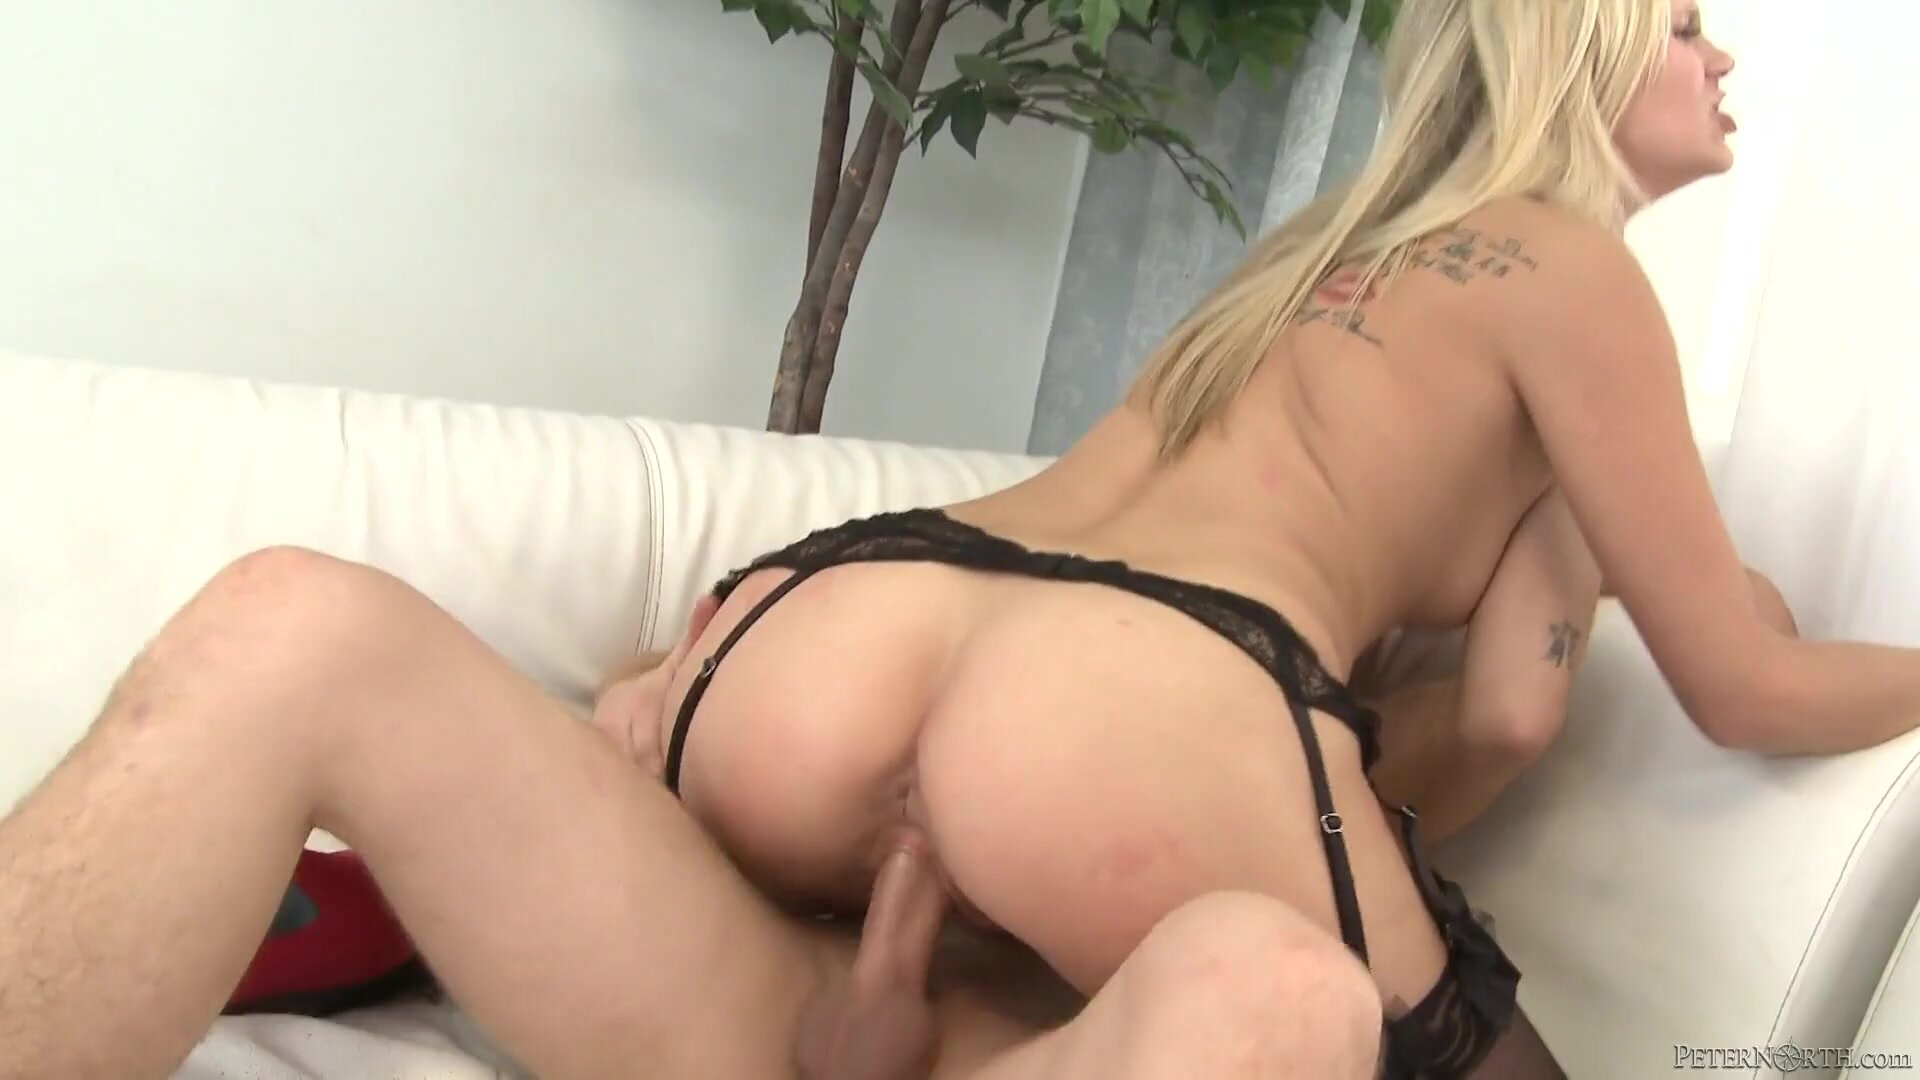 Amazing Blonde With Stockings Gets Fucked Hard - Scarlet Red